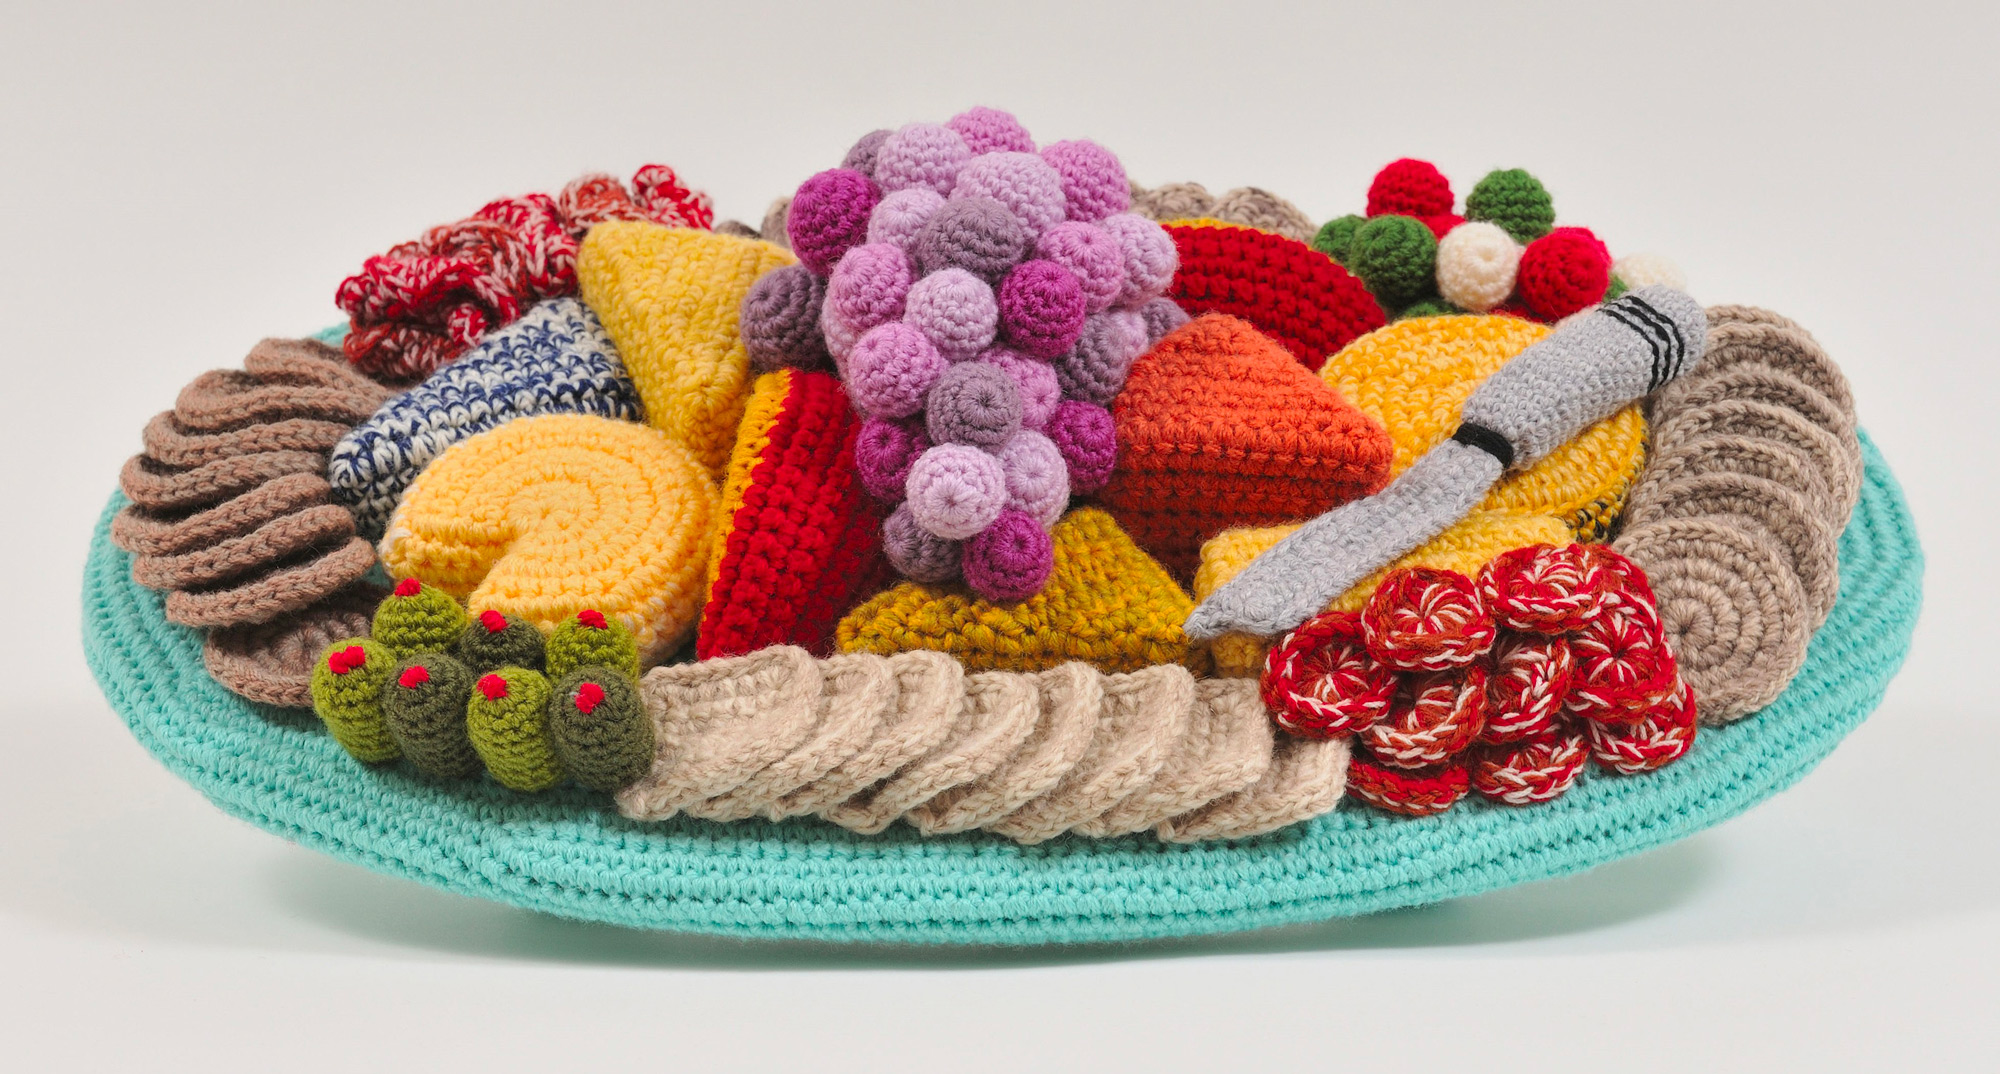 Crocheted Hams and Hairdryers by Trevor Smith Evoke Memories of Mid-Century Domesticity